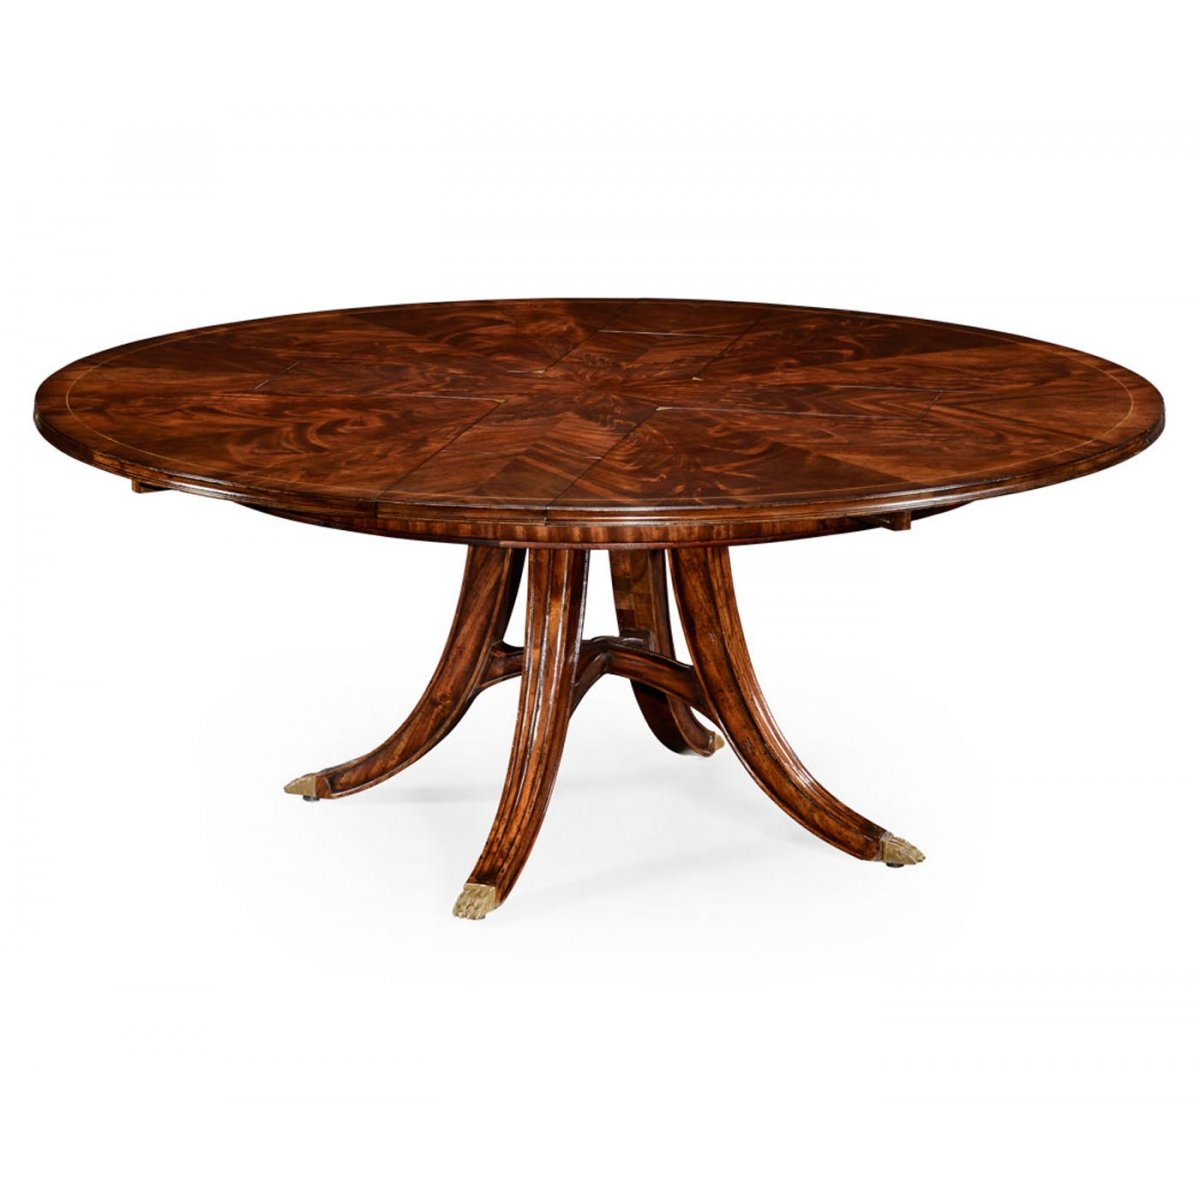 8 10 seater round extending dining table swanky interiors for 10 seat round table